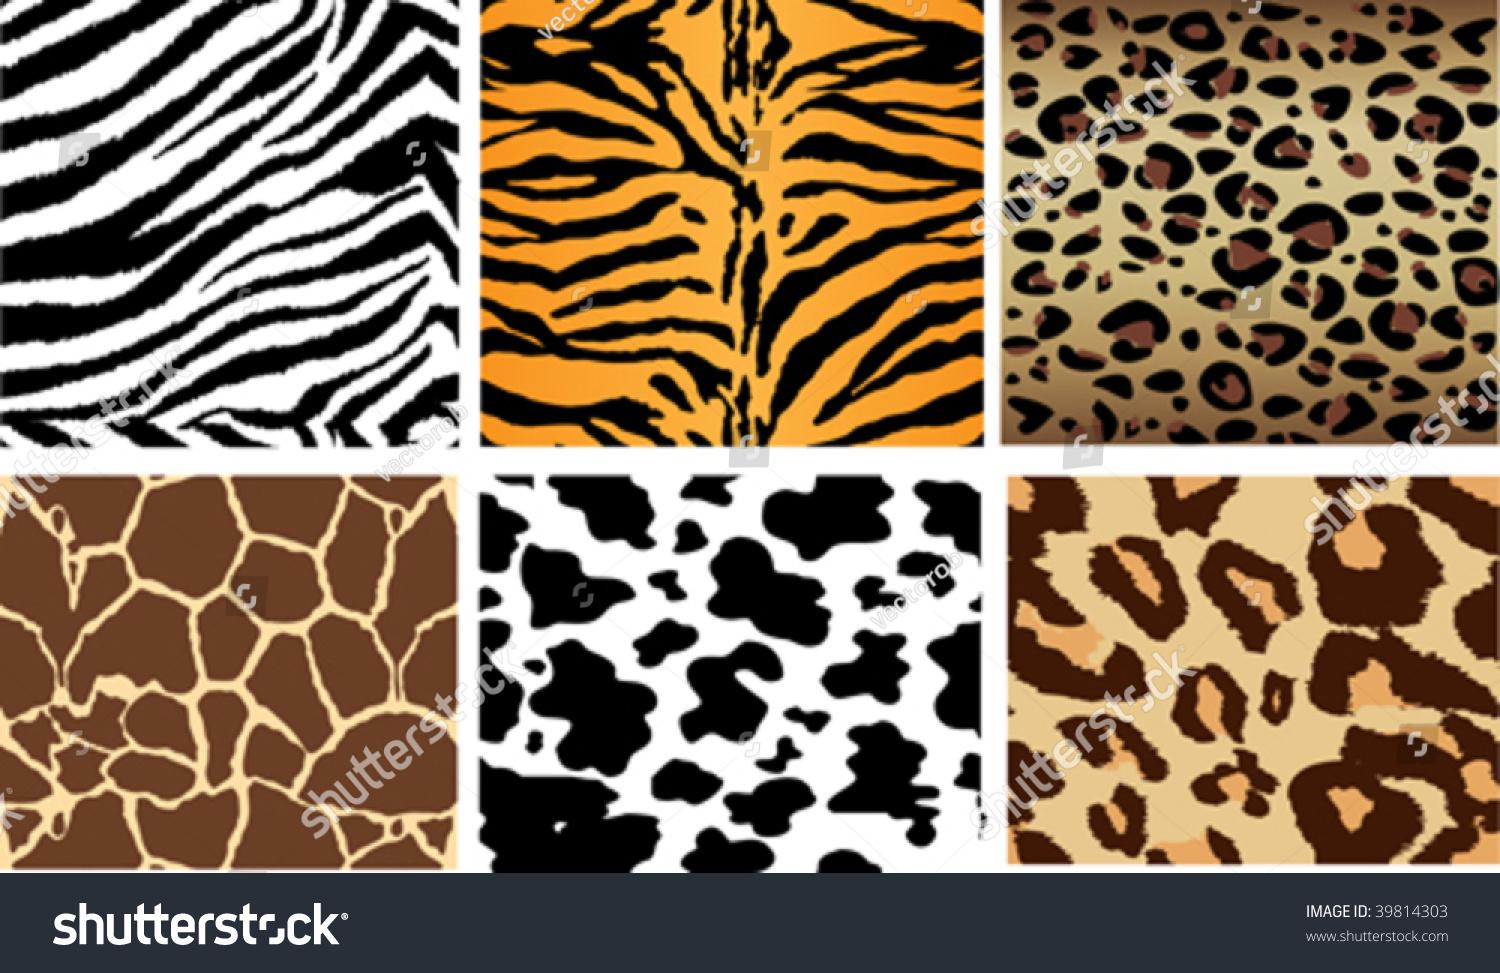 Animal Print Tileable Backgrounds Sides Match Up To Tile